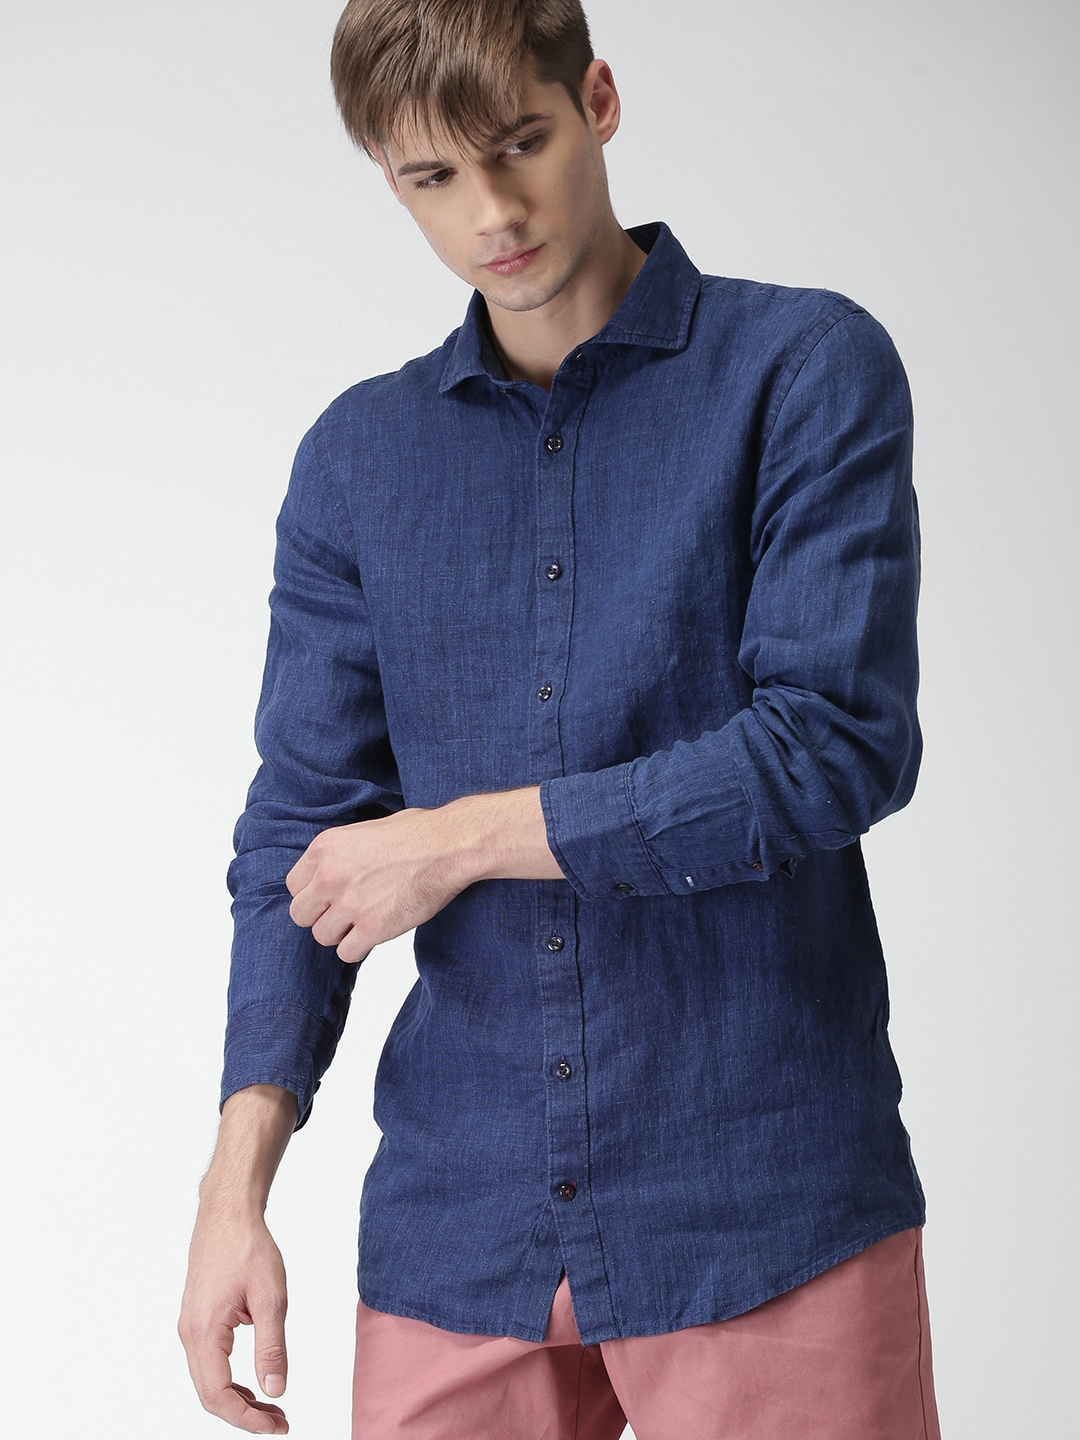 12077f0965d Tommy Hilfiger Linen Shirts - Buy Tommy Hilfiger Linen Shirts online in  India